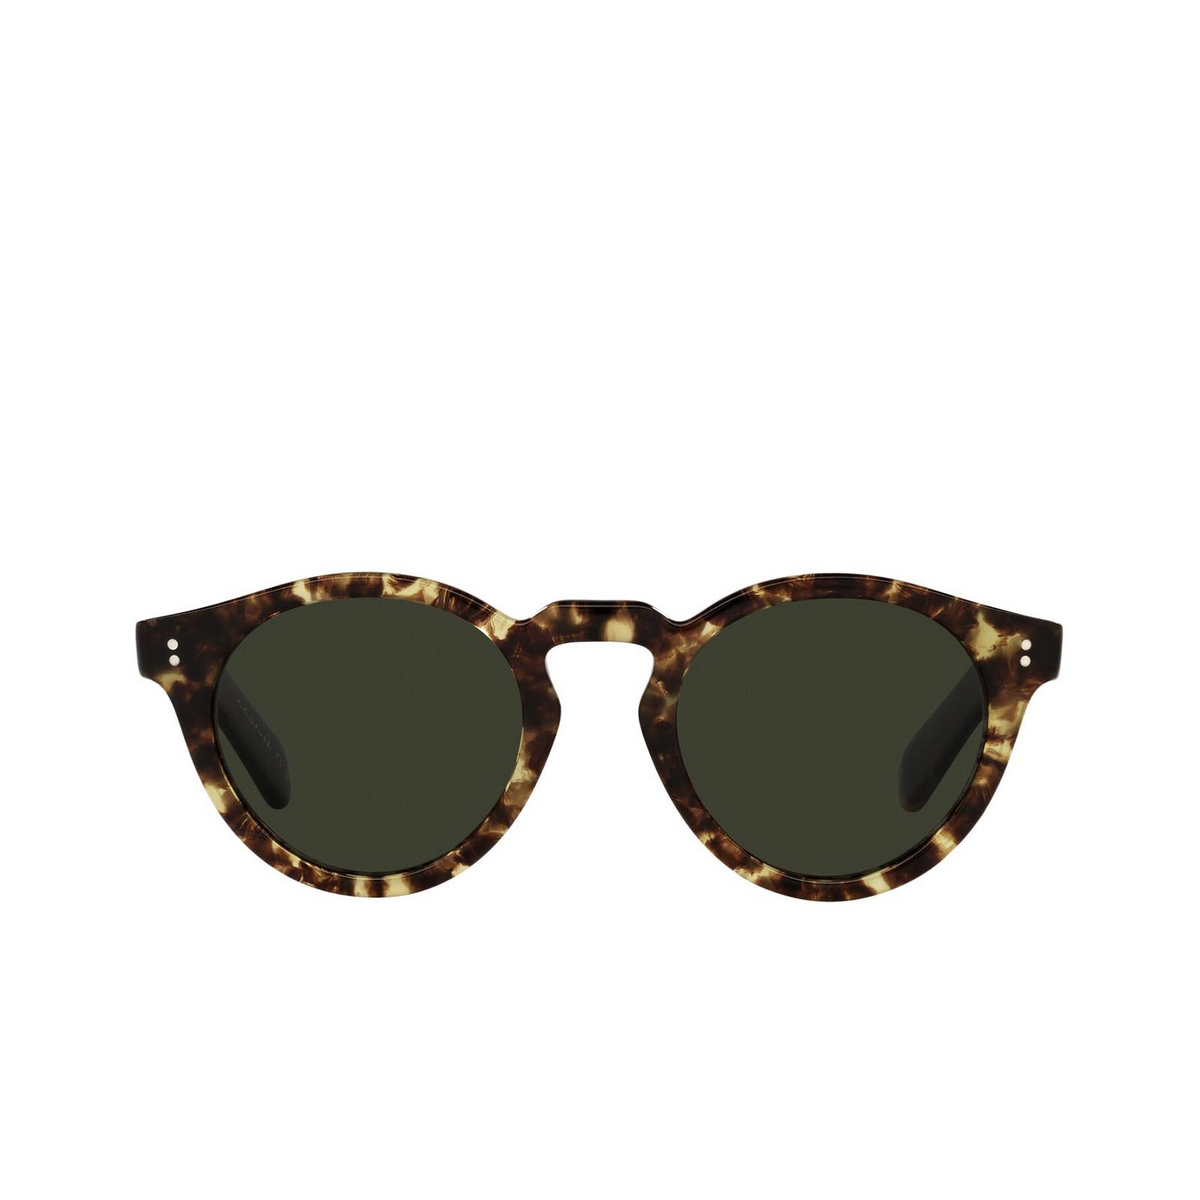 Oliver Peoples® Round Sunglasses: Martineaux OV5450SU color 382 1700P1 - front view.